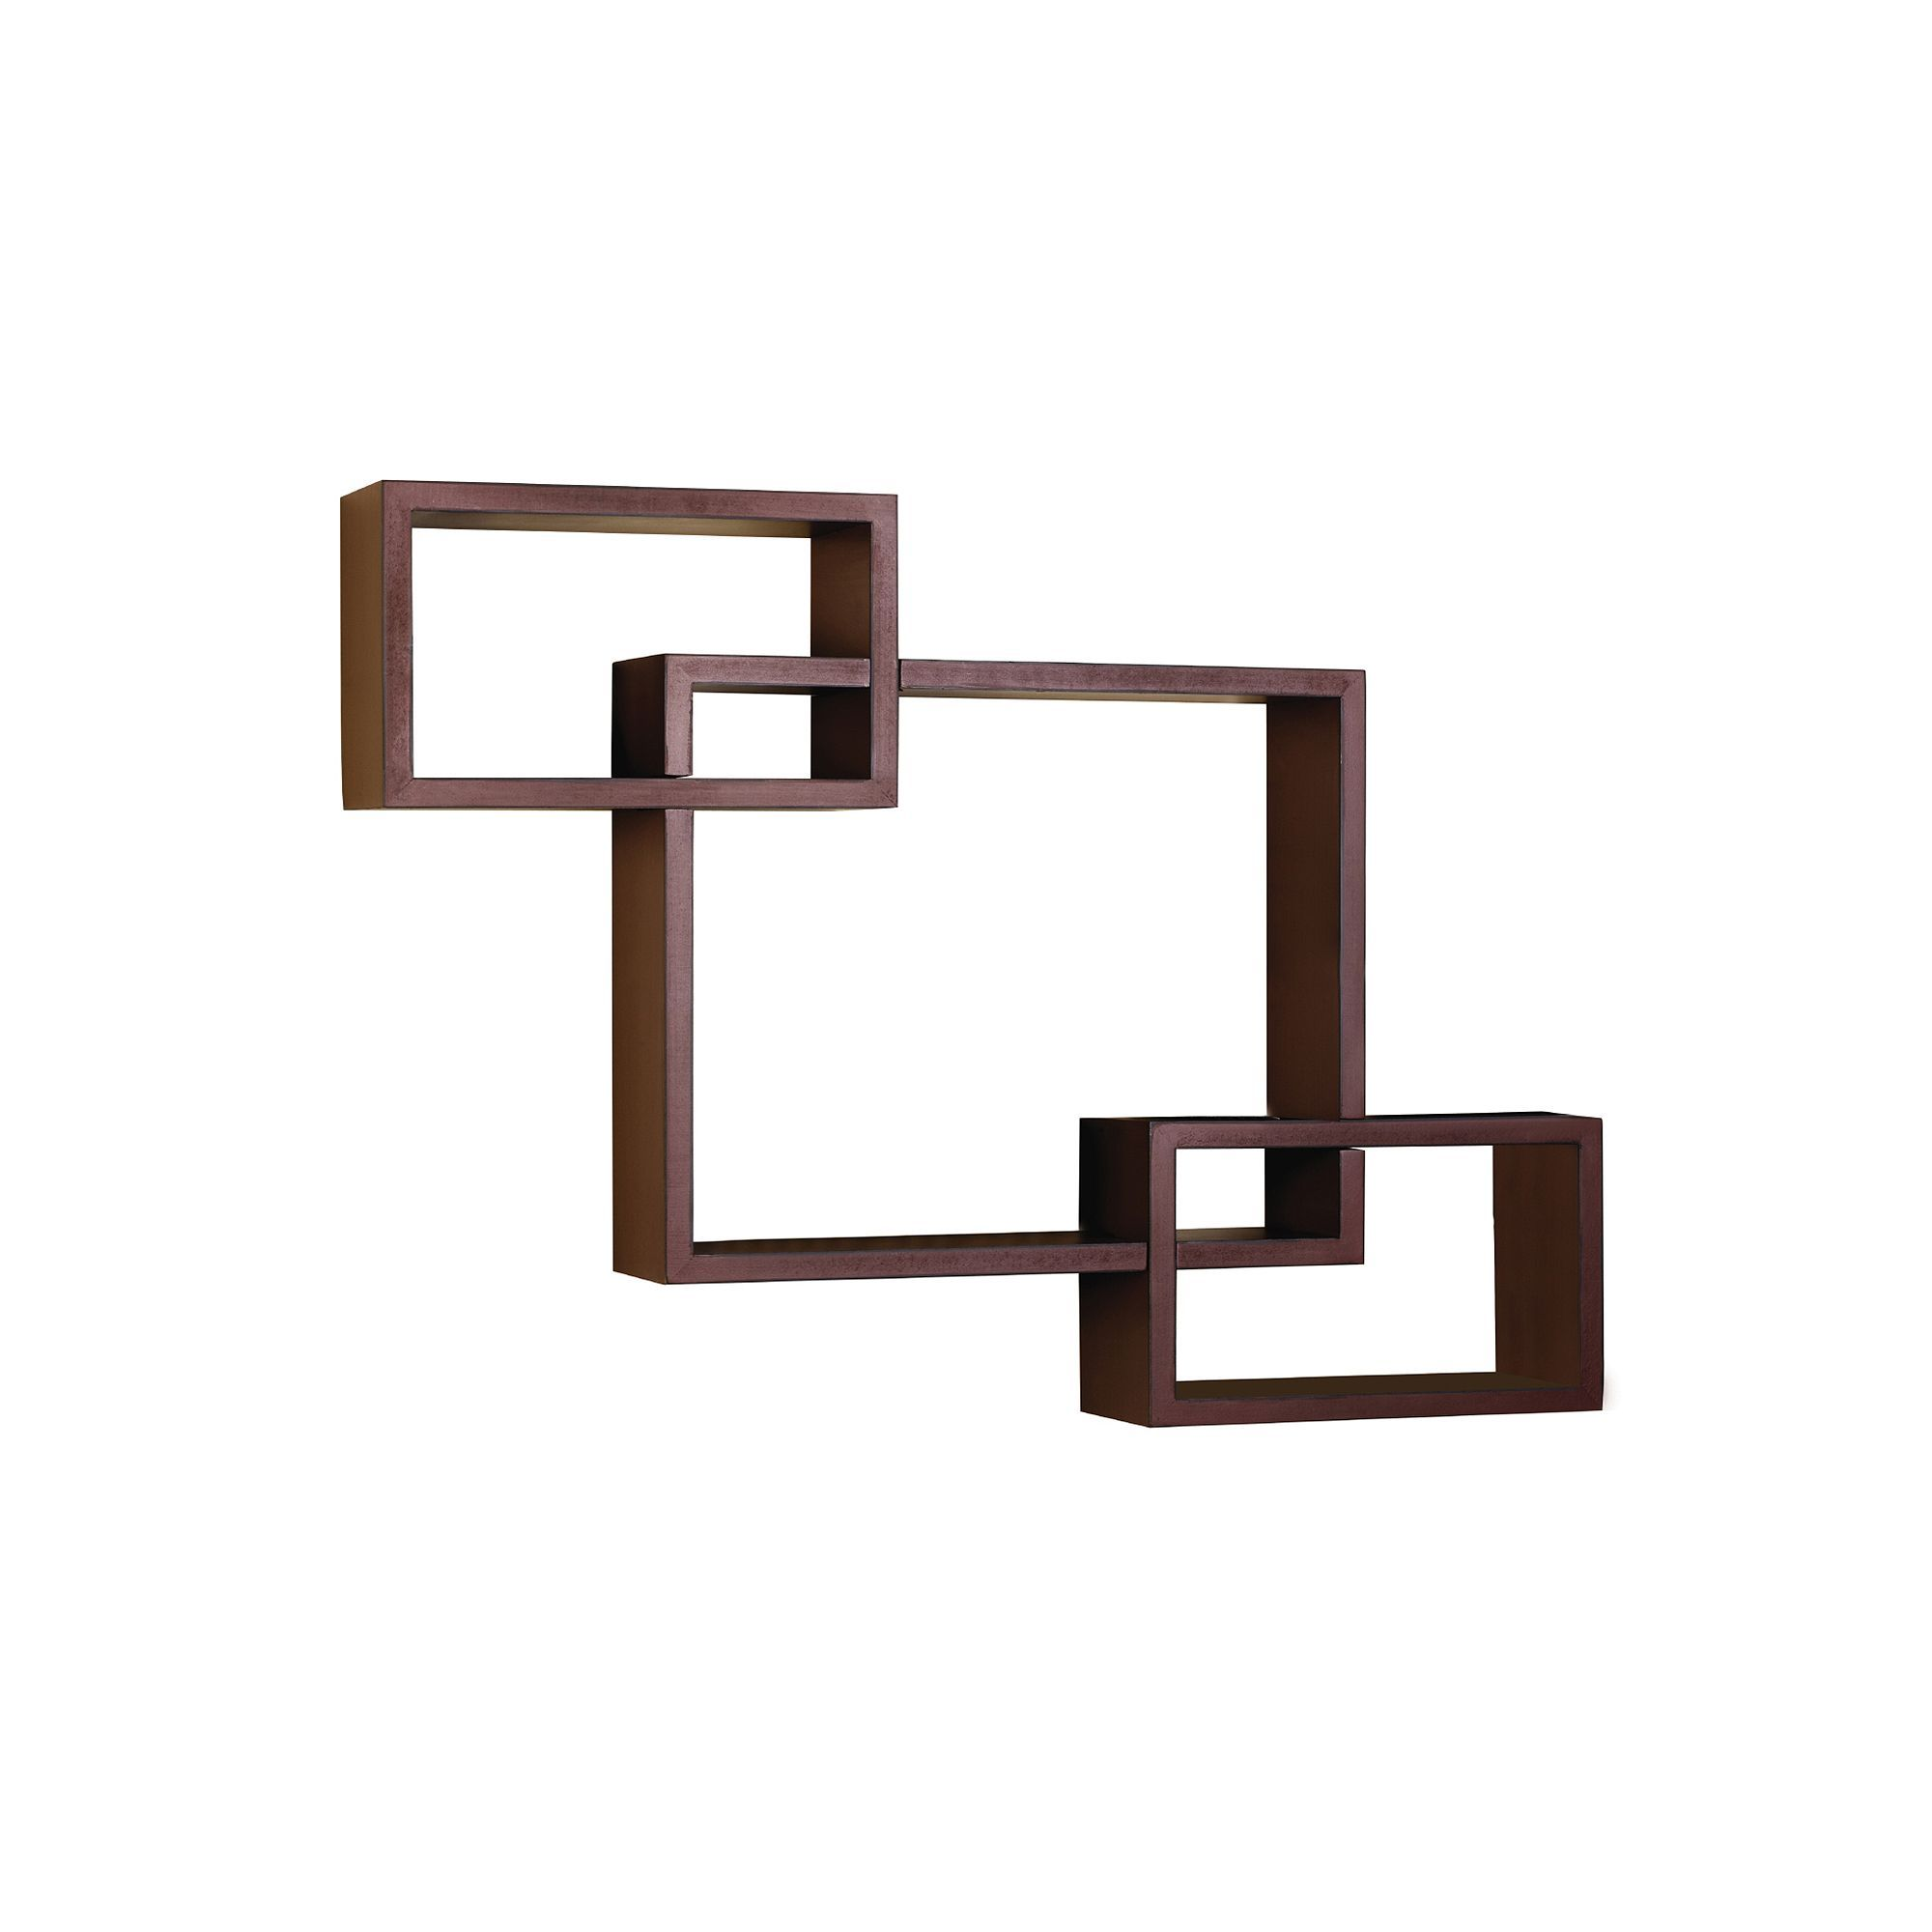 Melannco Floating Shelves Melannco 3Piece Interlocking Cube Wall Shelves Set Red  Products